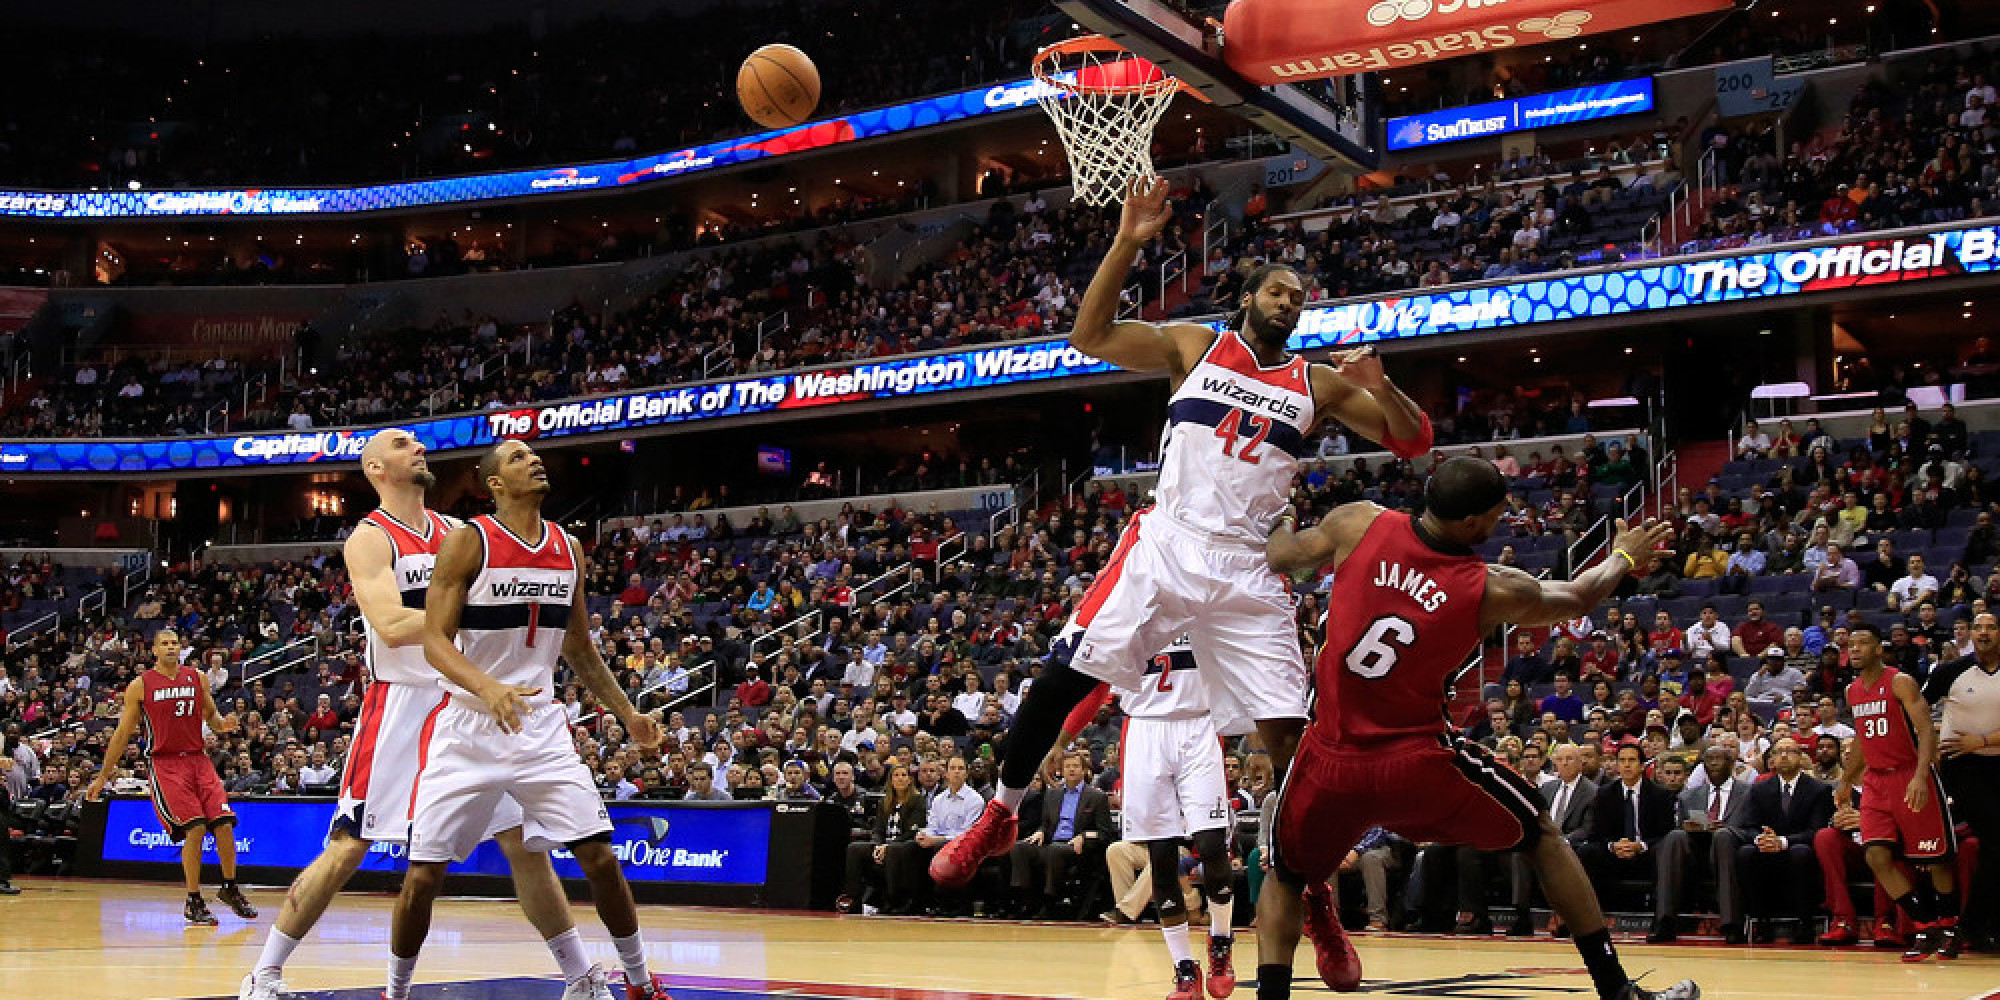 Nene Rejected LeBron James And Then Posterized Him (VIDEOS) | HuffPost